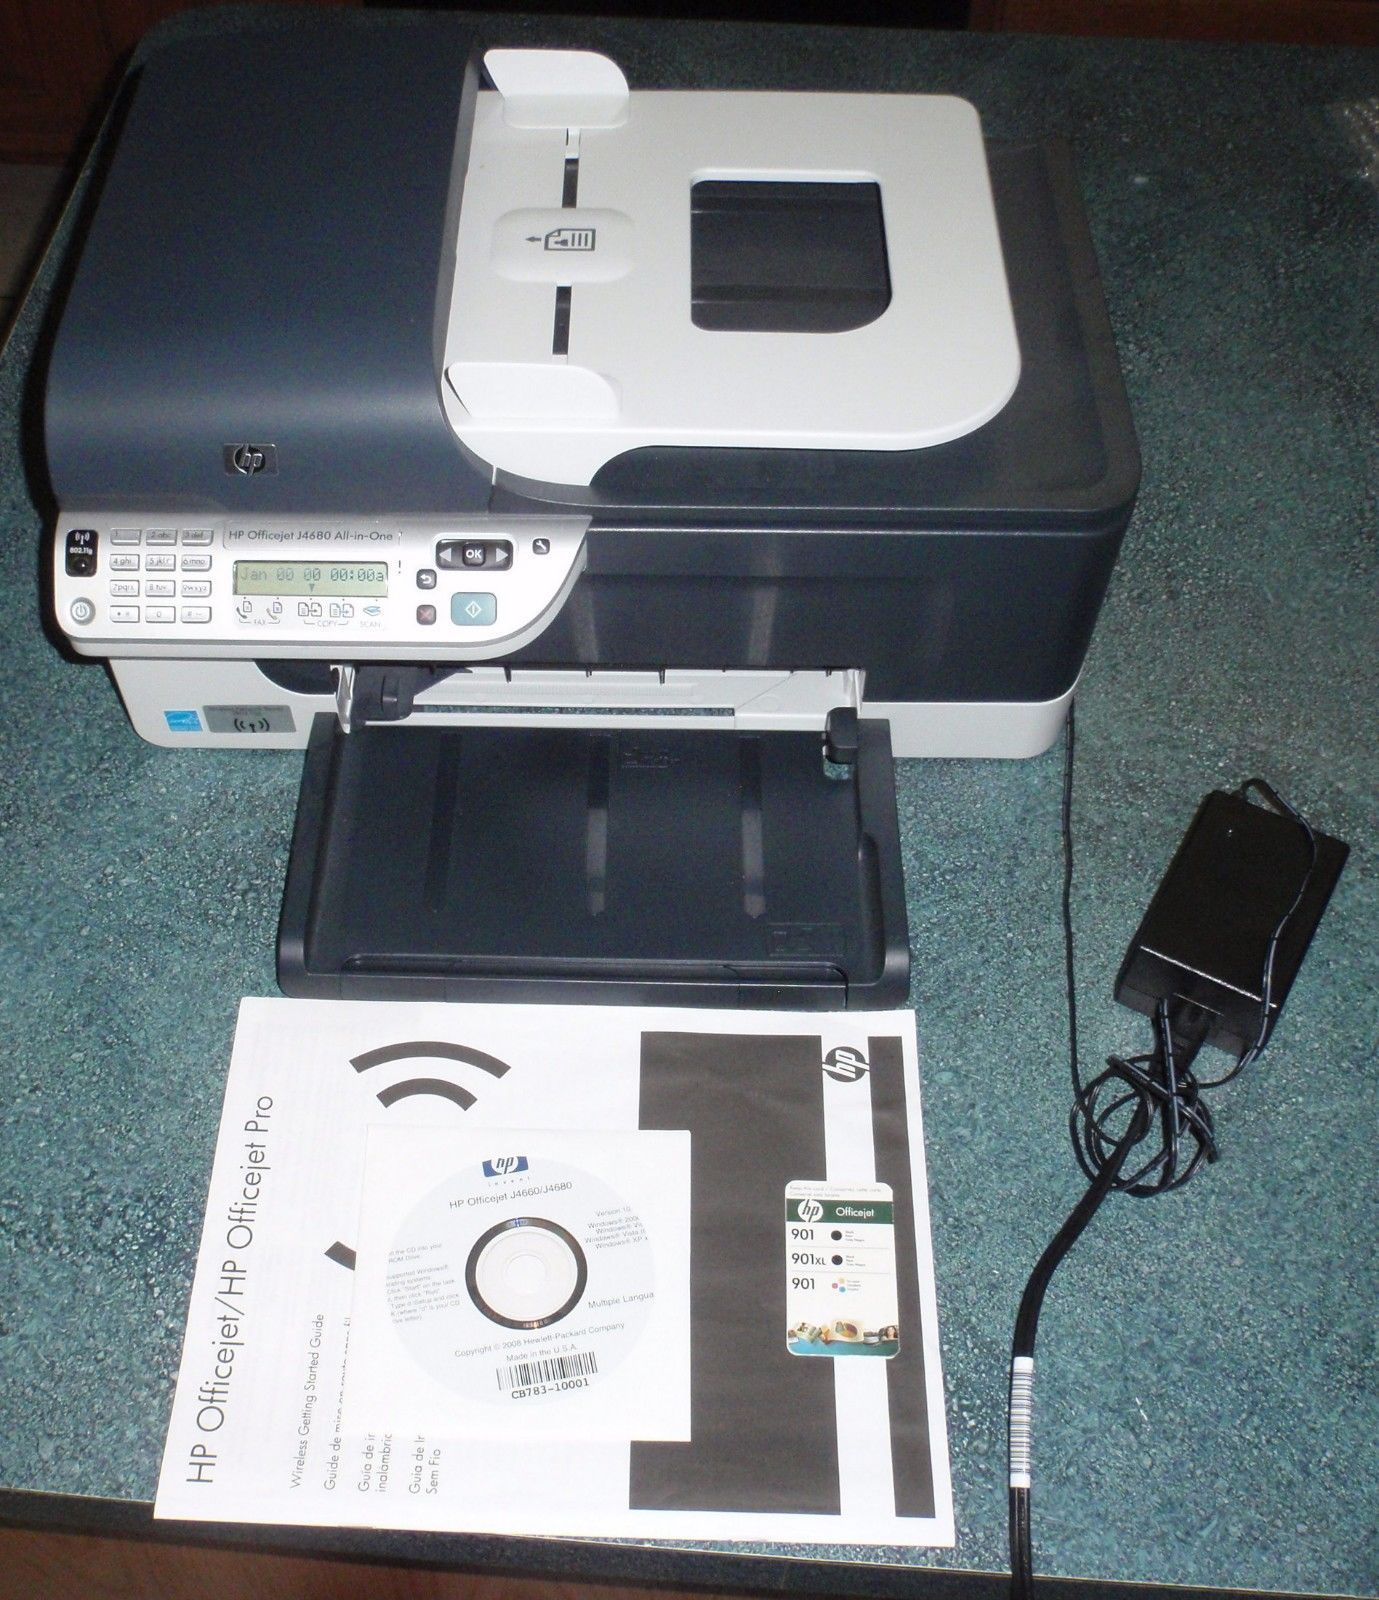 HP OfficeJet J4680 All-In-One Inkjet Printer - NICE FIND - FAST SHIPPING!